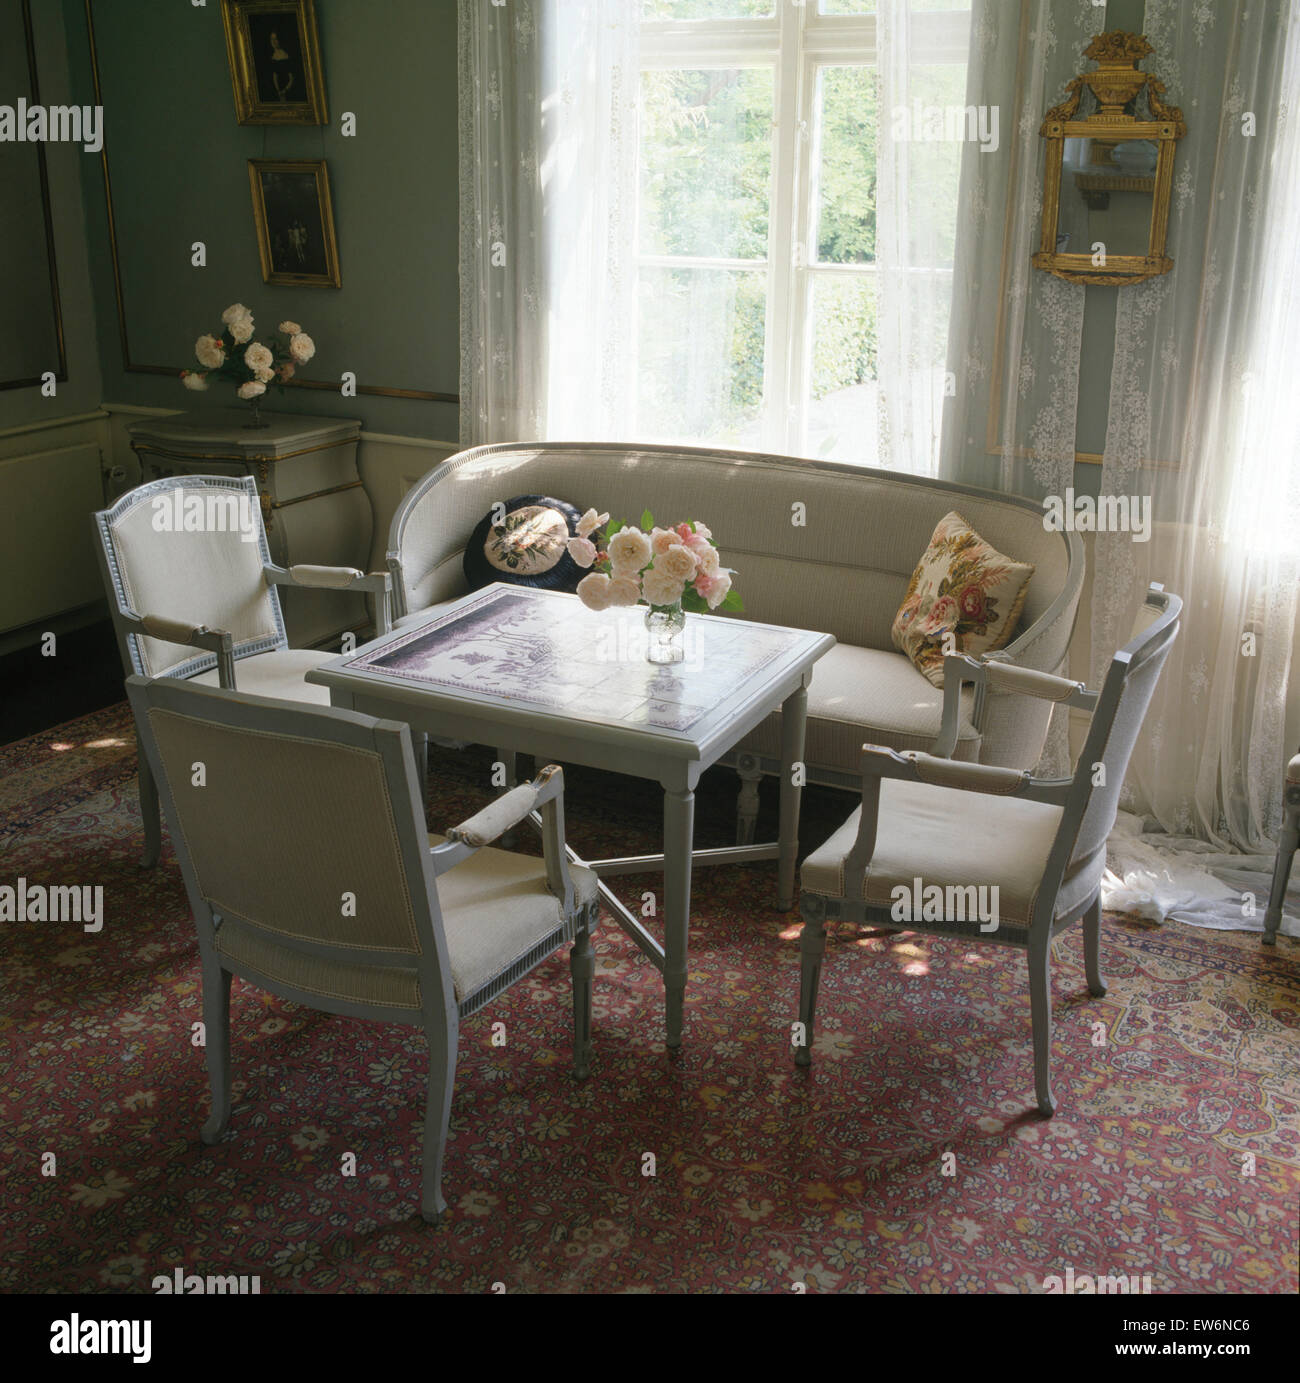 grey painted chairs large folding chair stock photos images alamy and small table in swedish dining room image